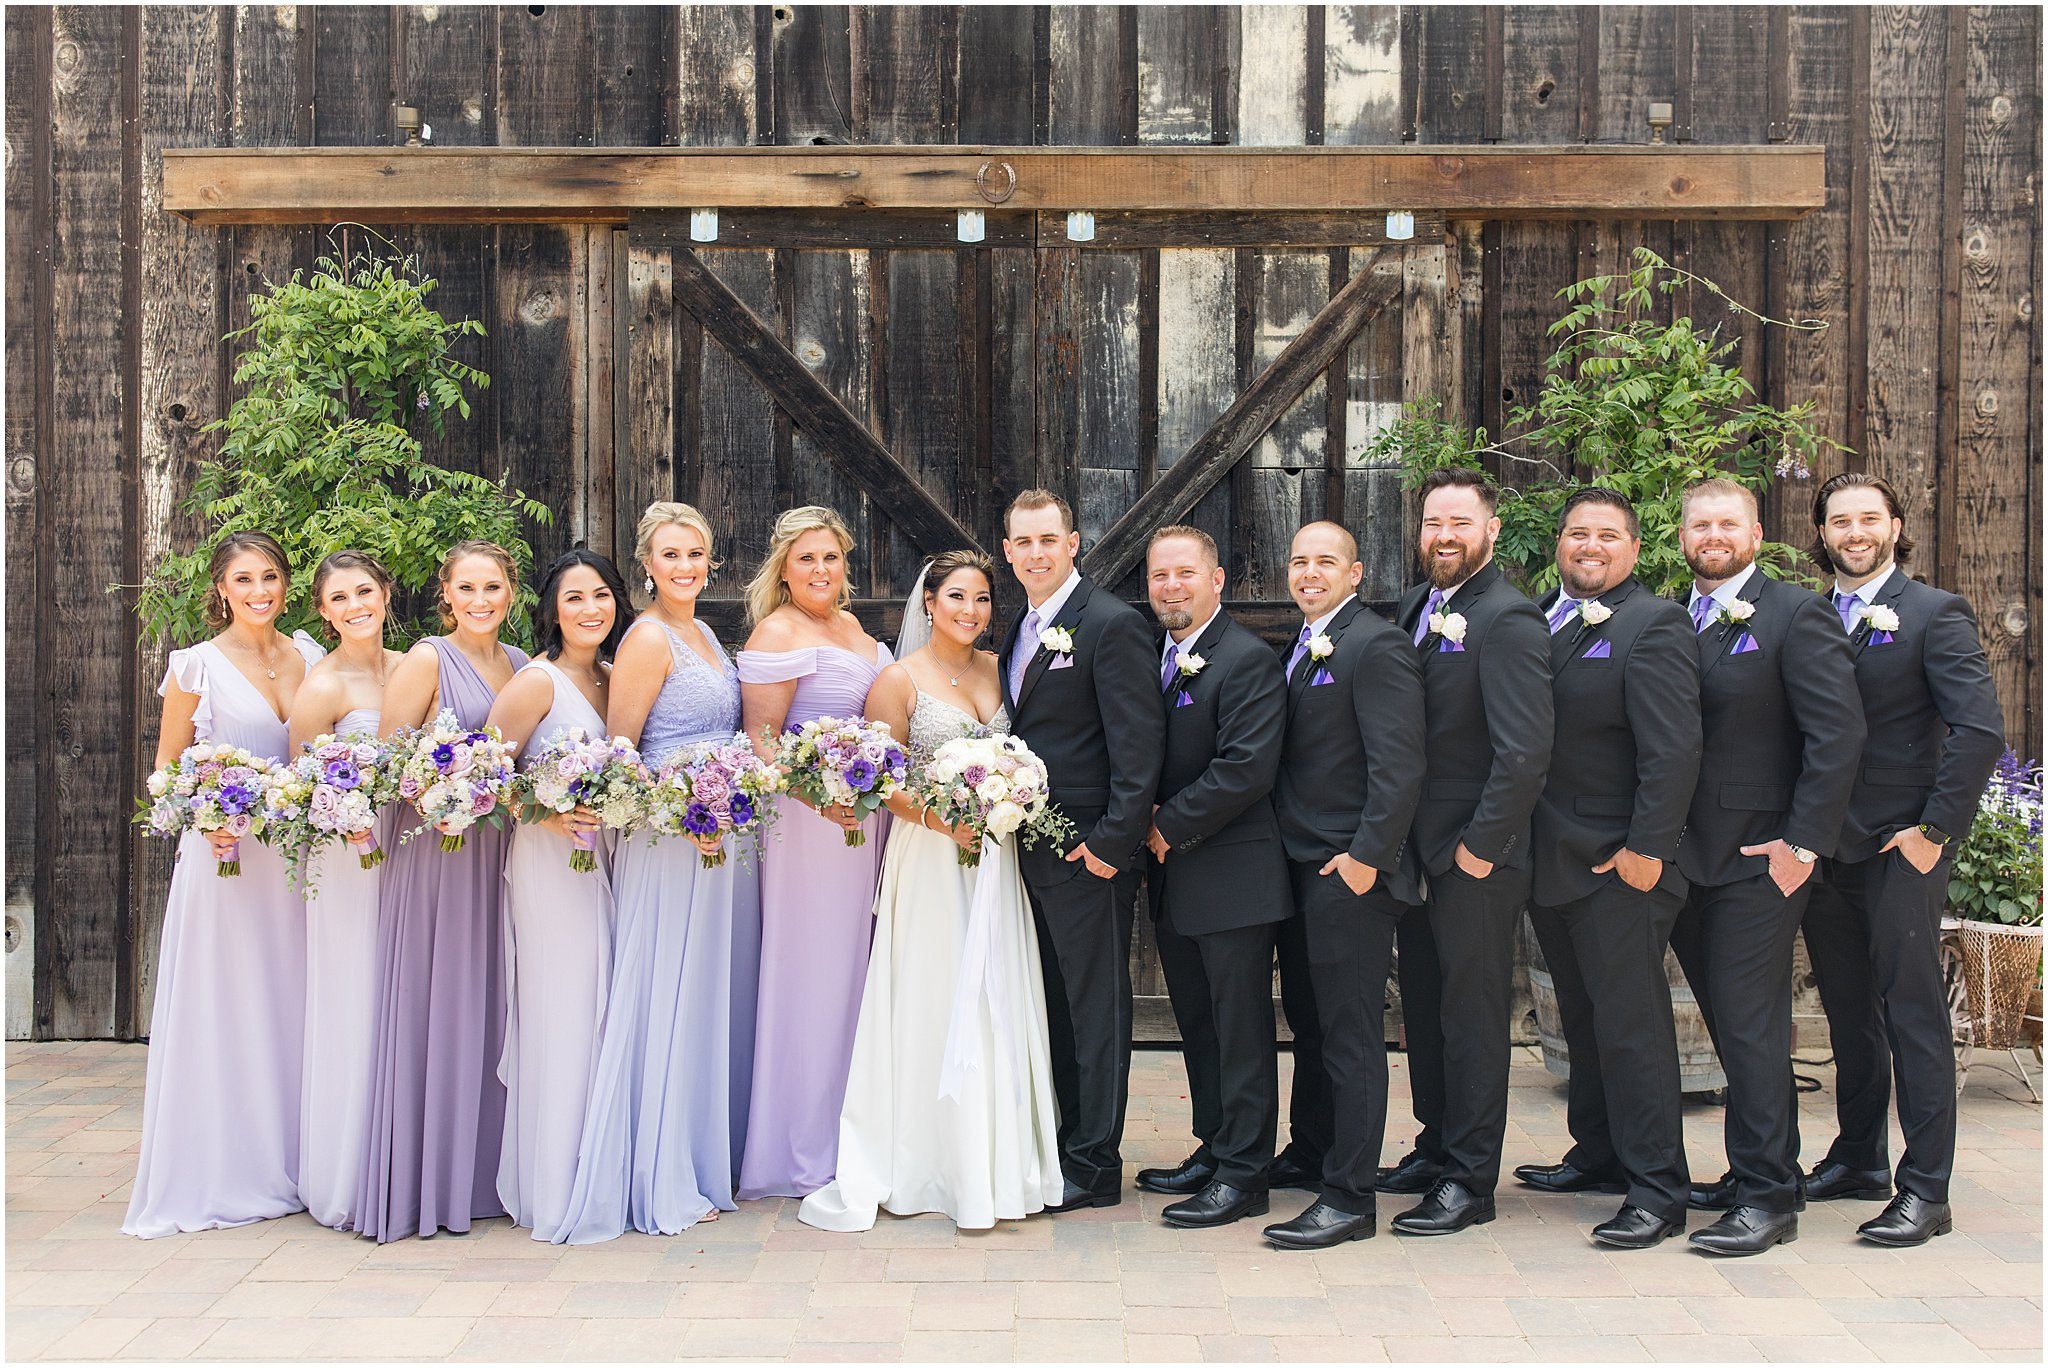 2019 wedding san juan bautista hacienda de leal vineyards bay area wedding photographer_0038.jpg